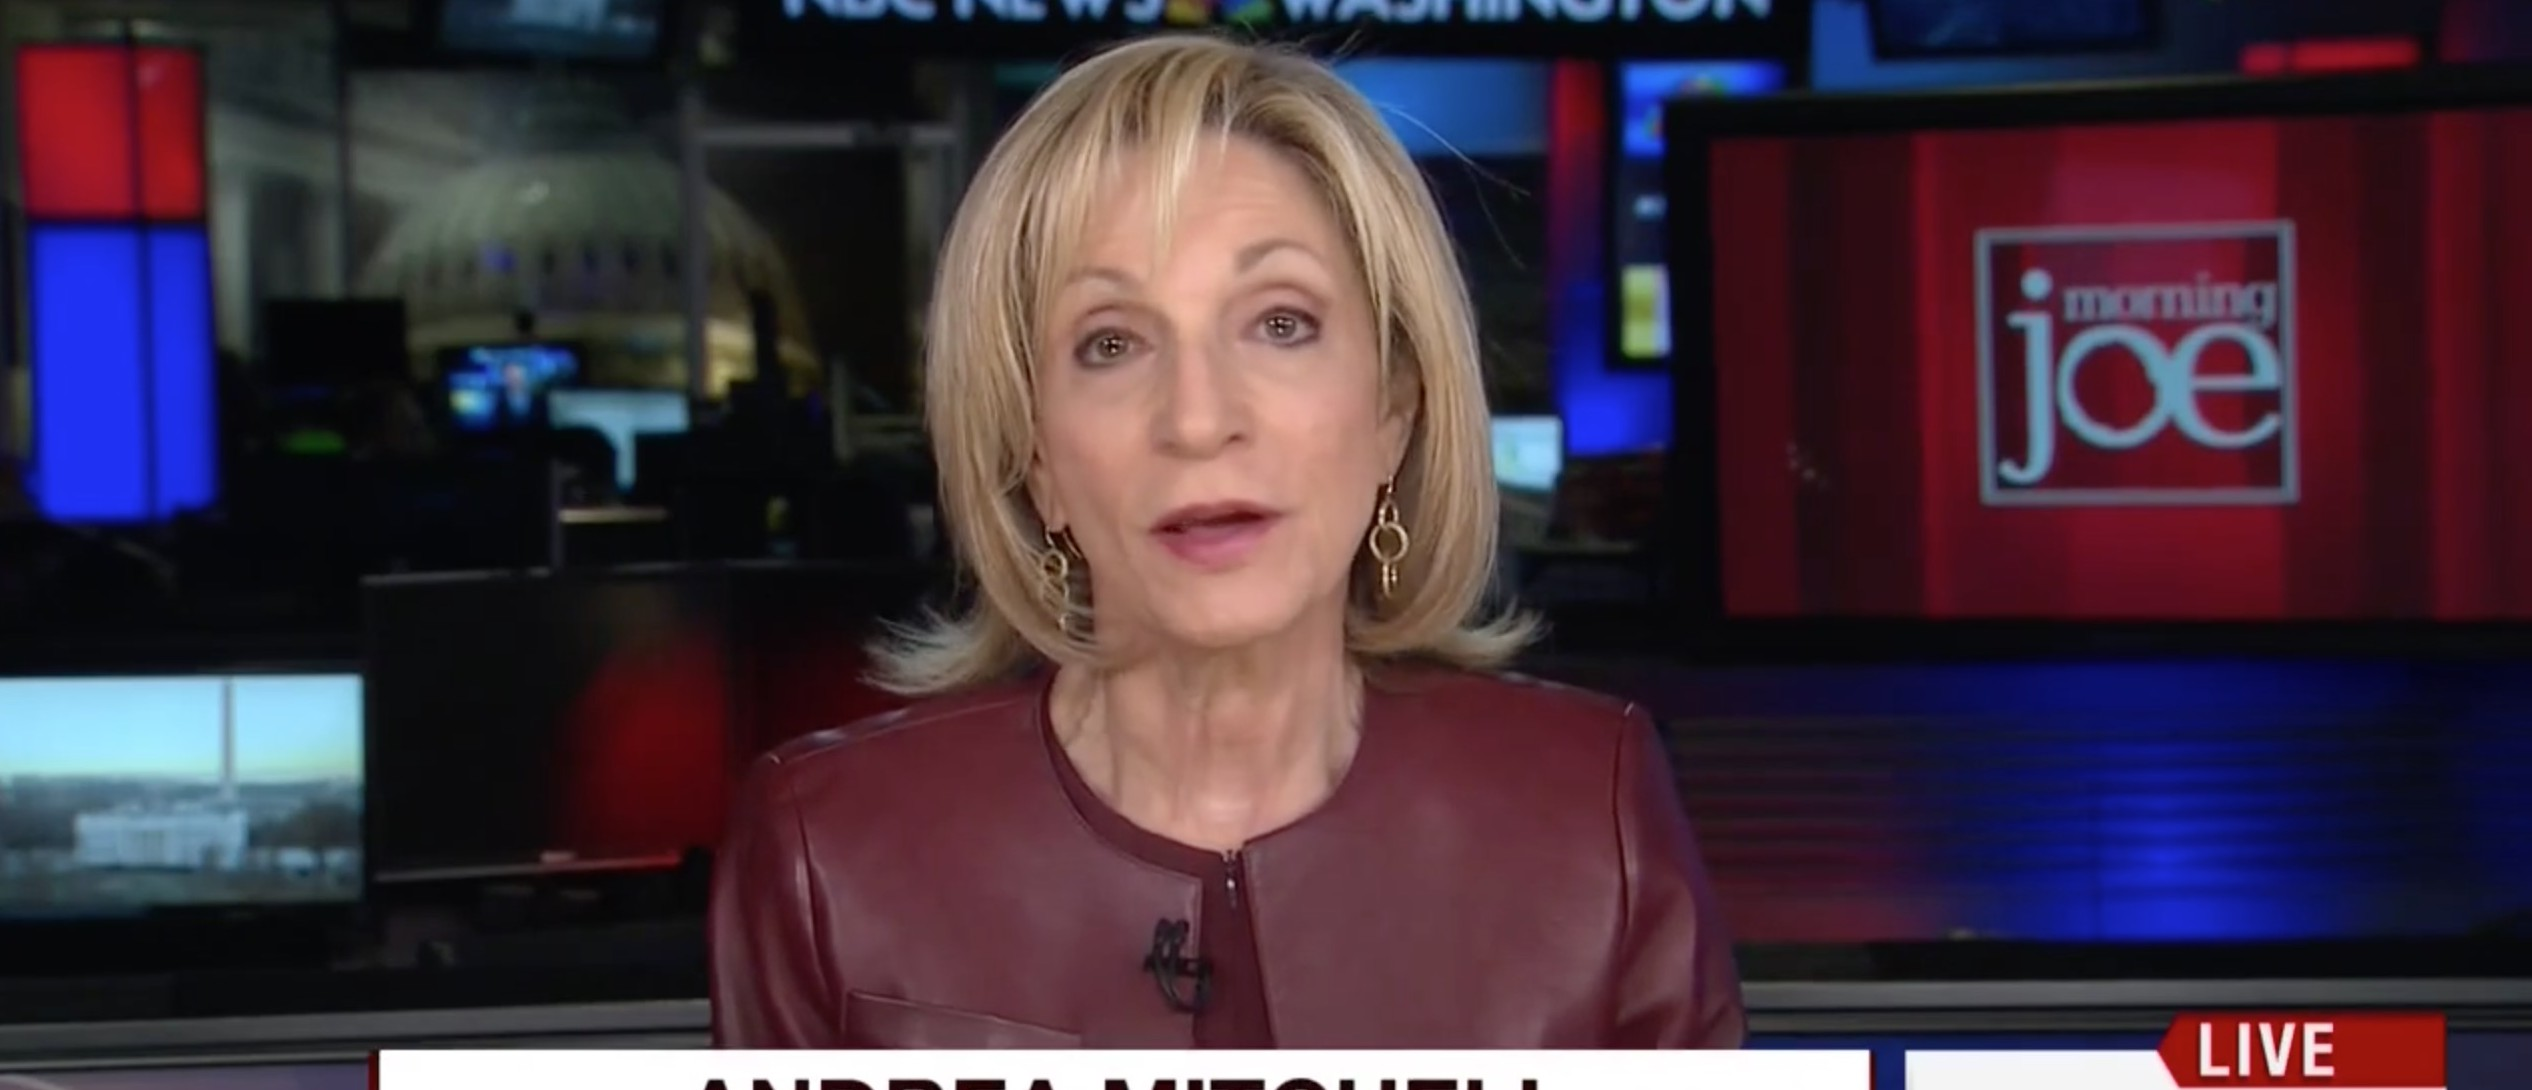 NBC's Mitchell: If The Clintons Call Trump Sexist, 'They Lose' [screen shot MSNBC]